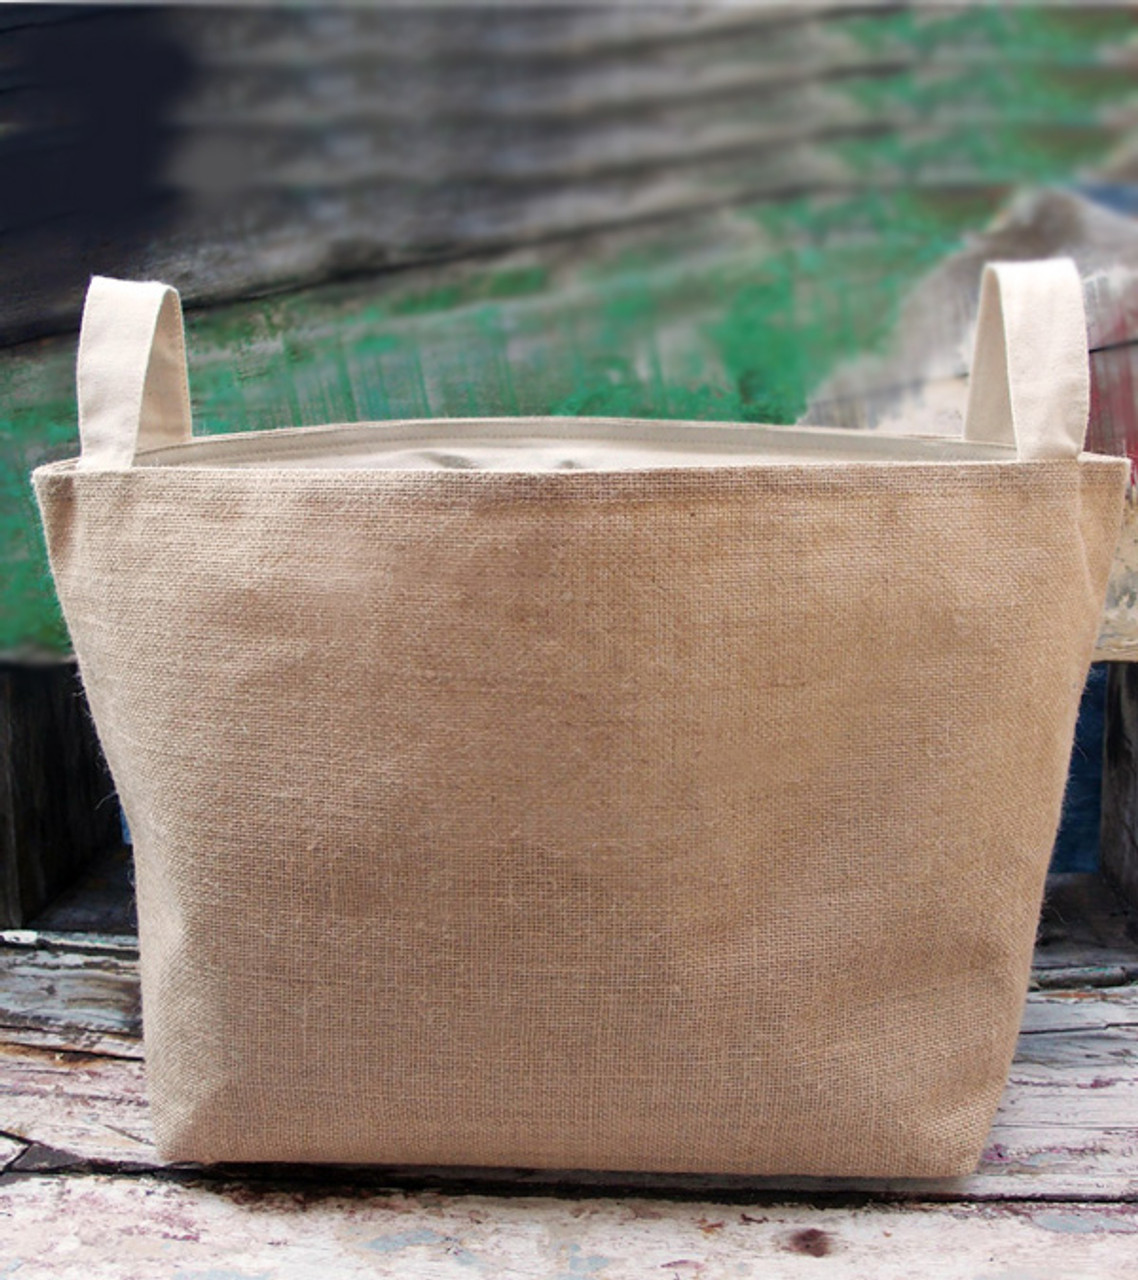 Burlap Storage Basket with Natural Cotton Lining 13x11